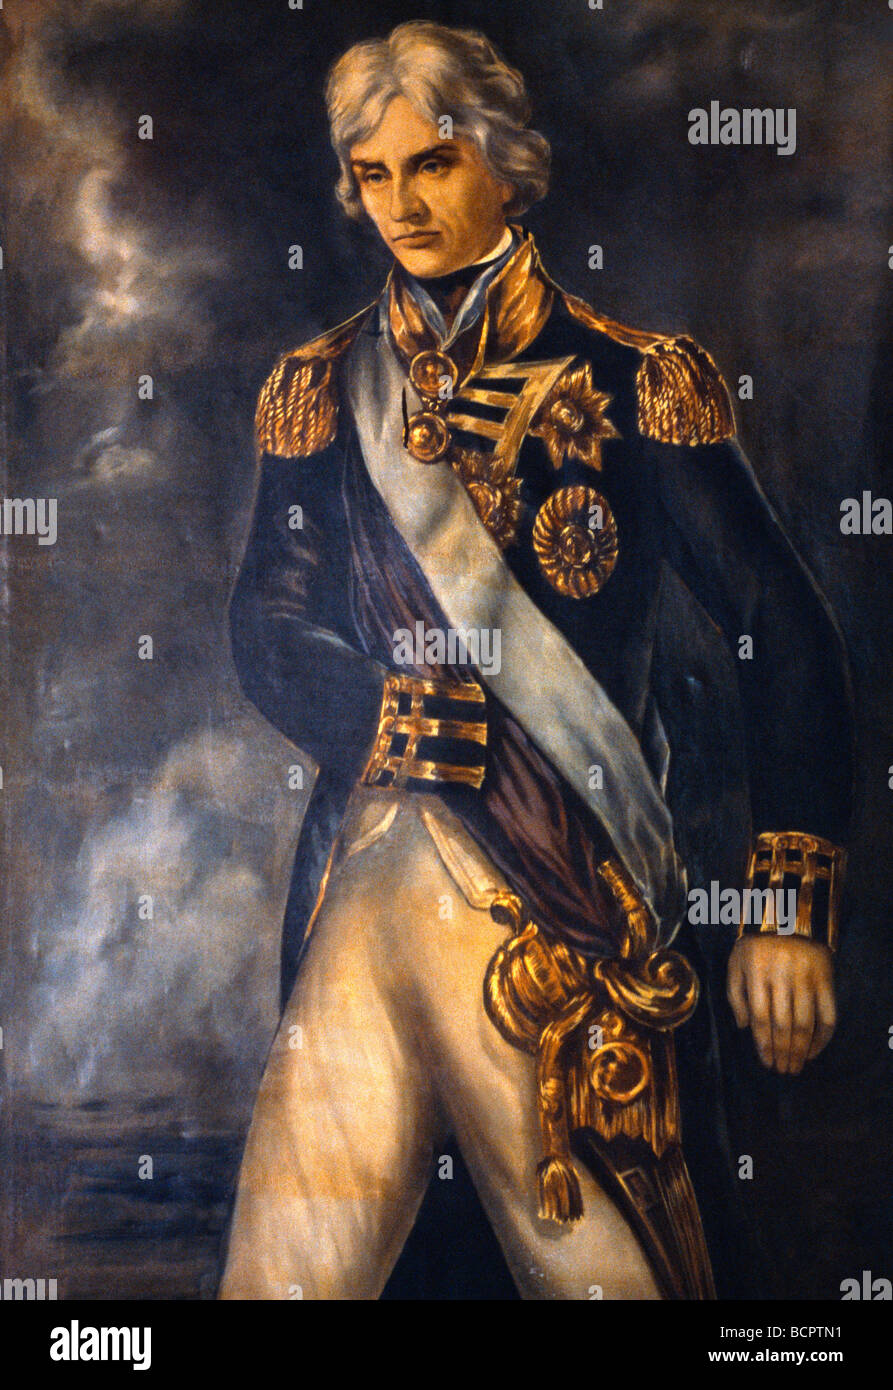 Nelsons Dockyard Antigua Portrait Of Admiral Lord Nelson